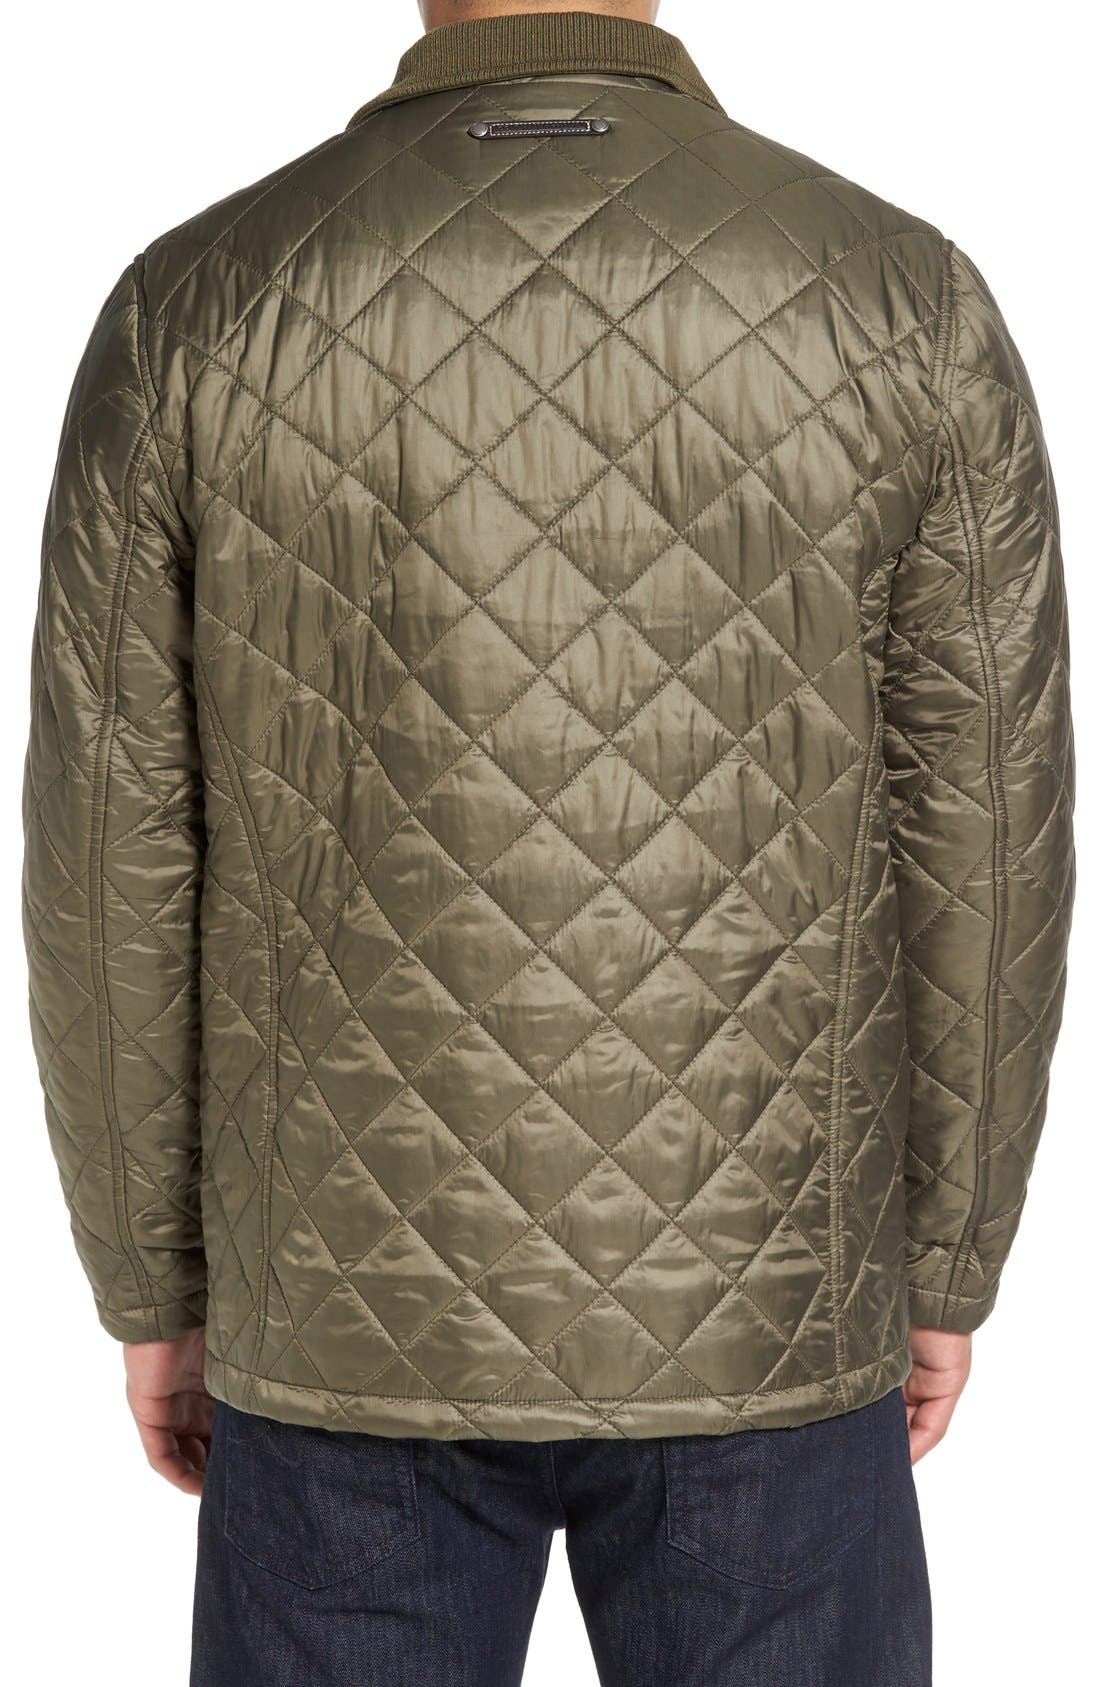 Diamond Quilted Jacket,                             Alternate thumbnail 8, color,                             Olive